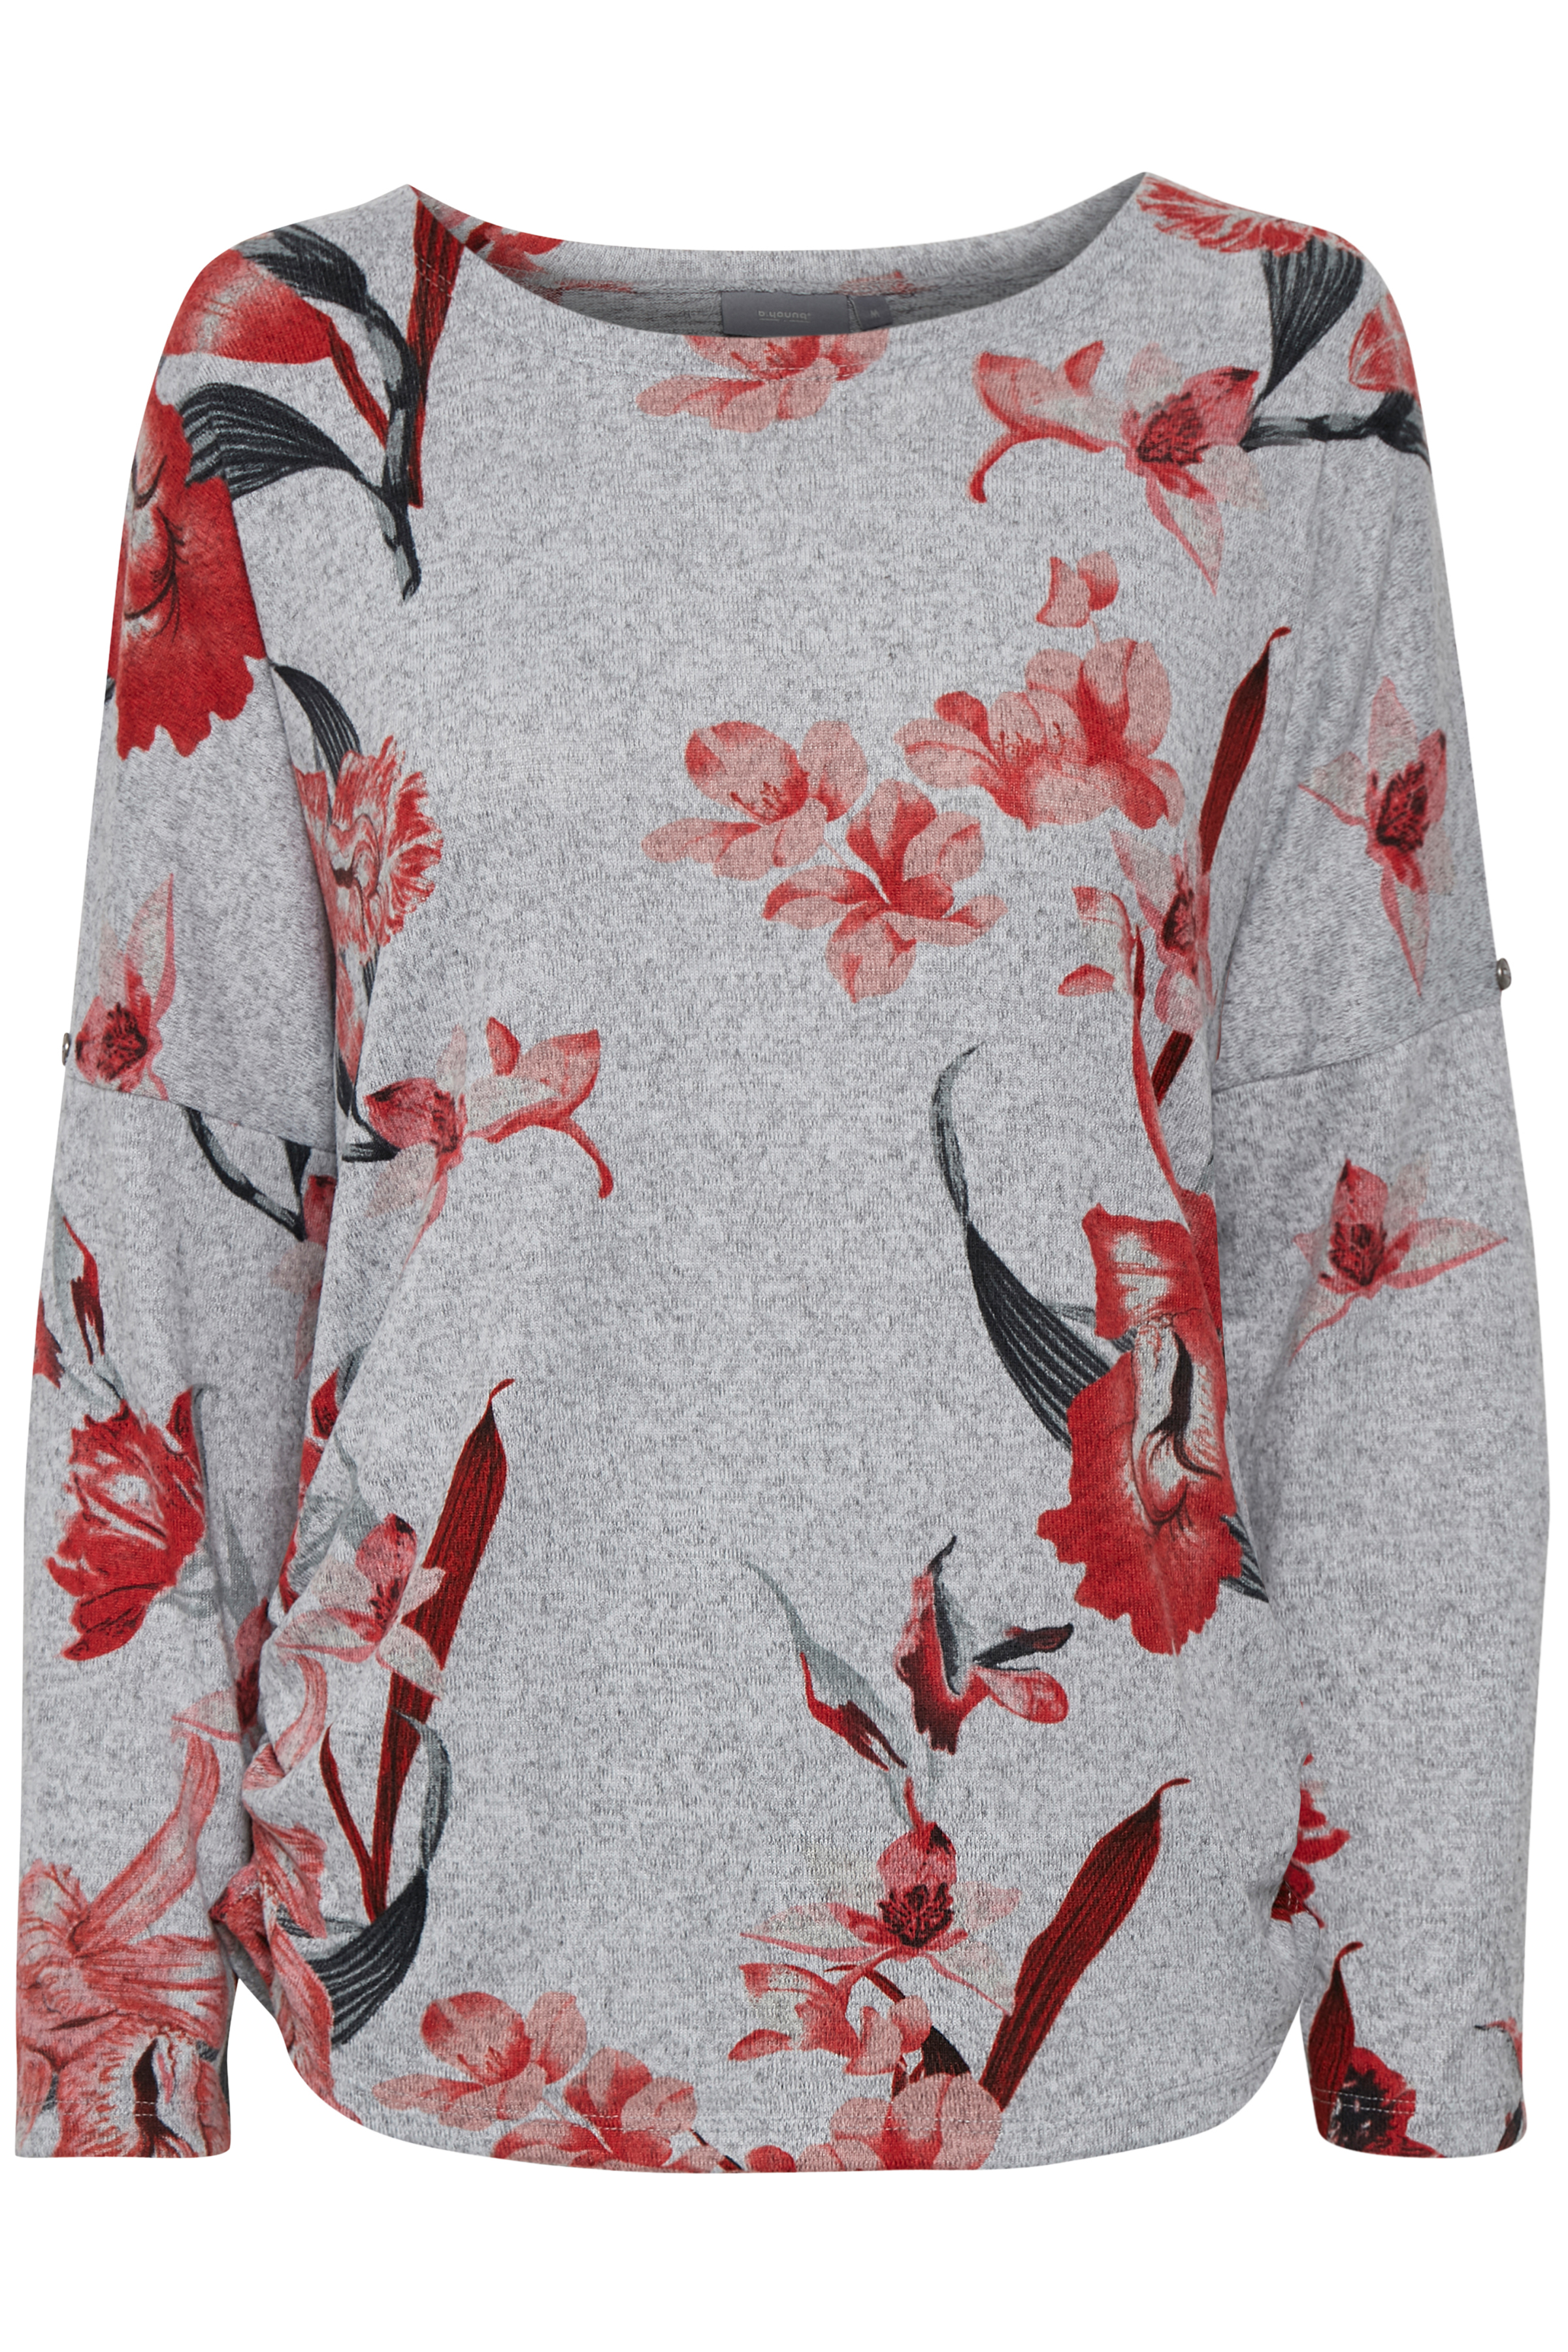 b.young Dame Jersey bluse  - Rød